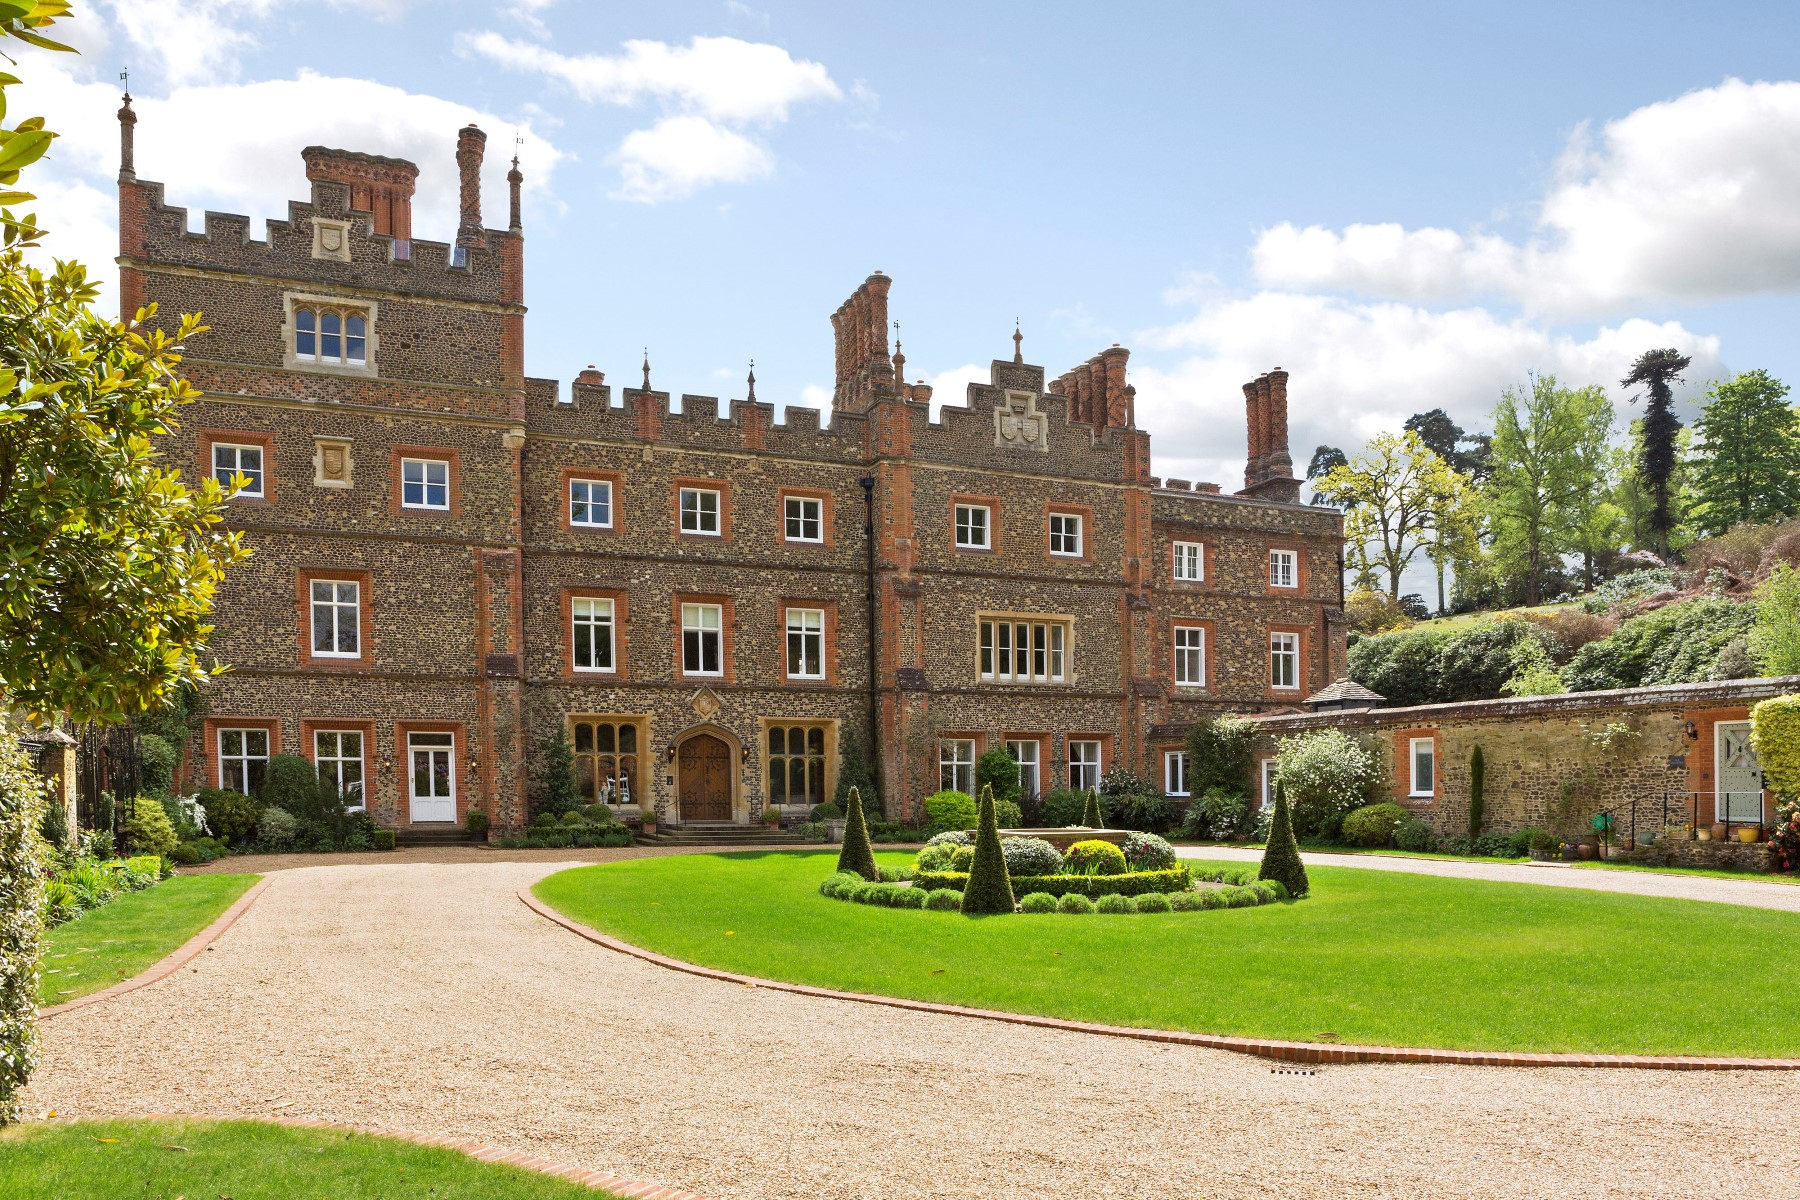 Single Family Homes for Sale at The Buttery, 2 Albury Park Mansion Albury, England GU5 9BB United Kingdom